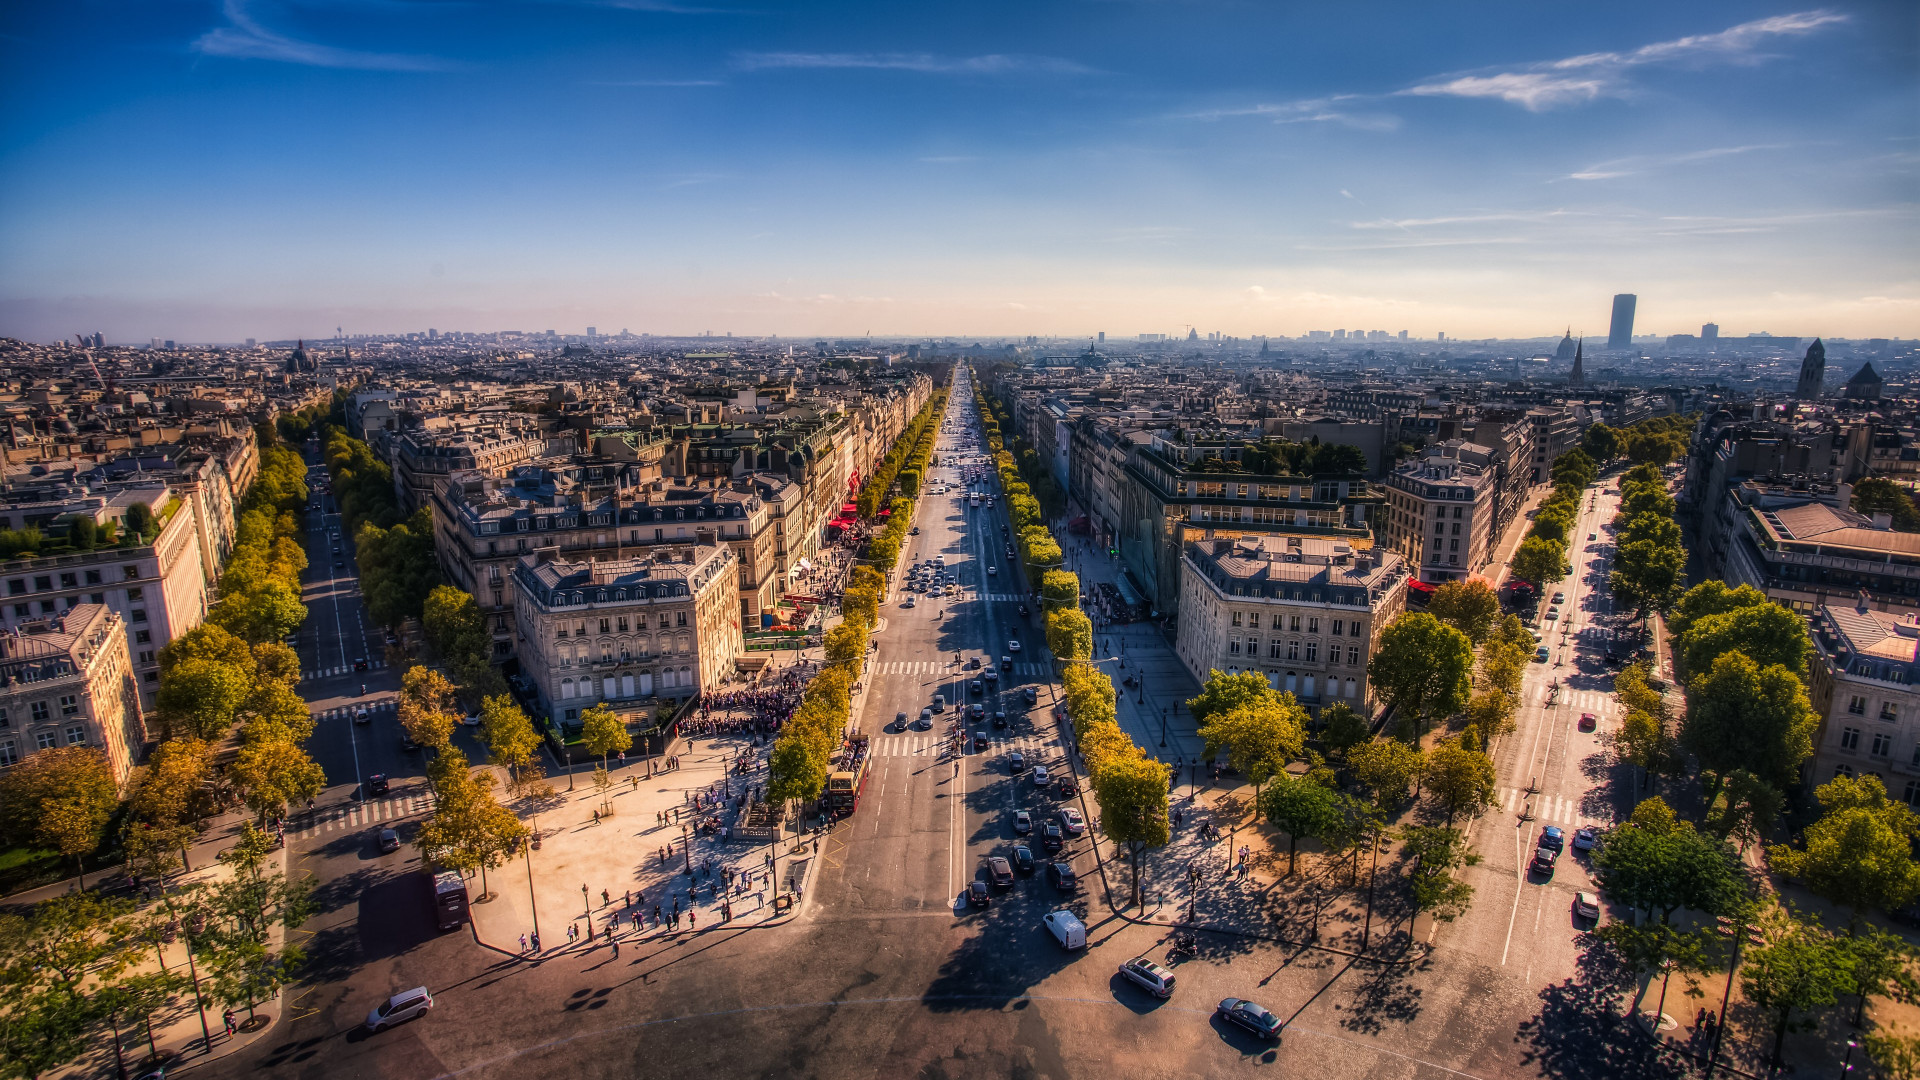 Champs Elysees. Paris, France wallpaper 1920x1080